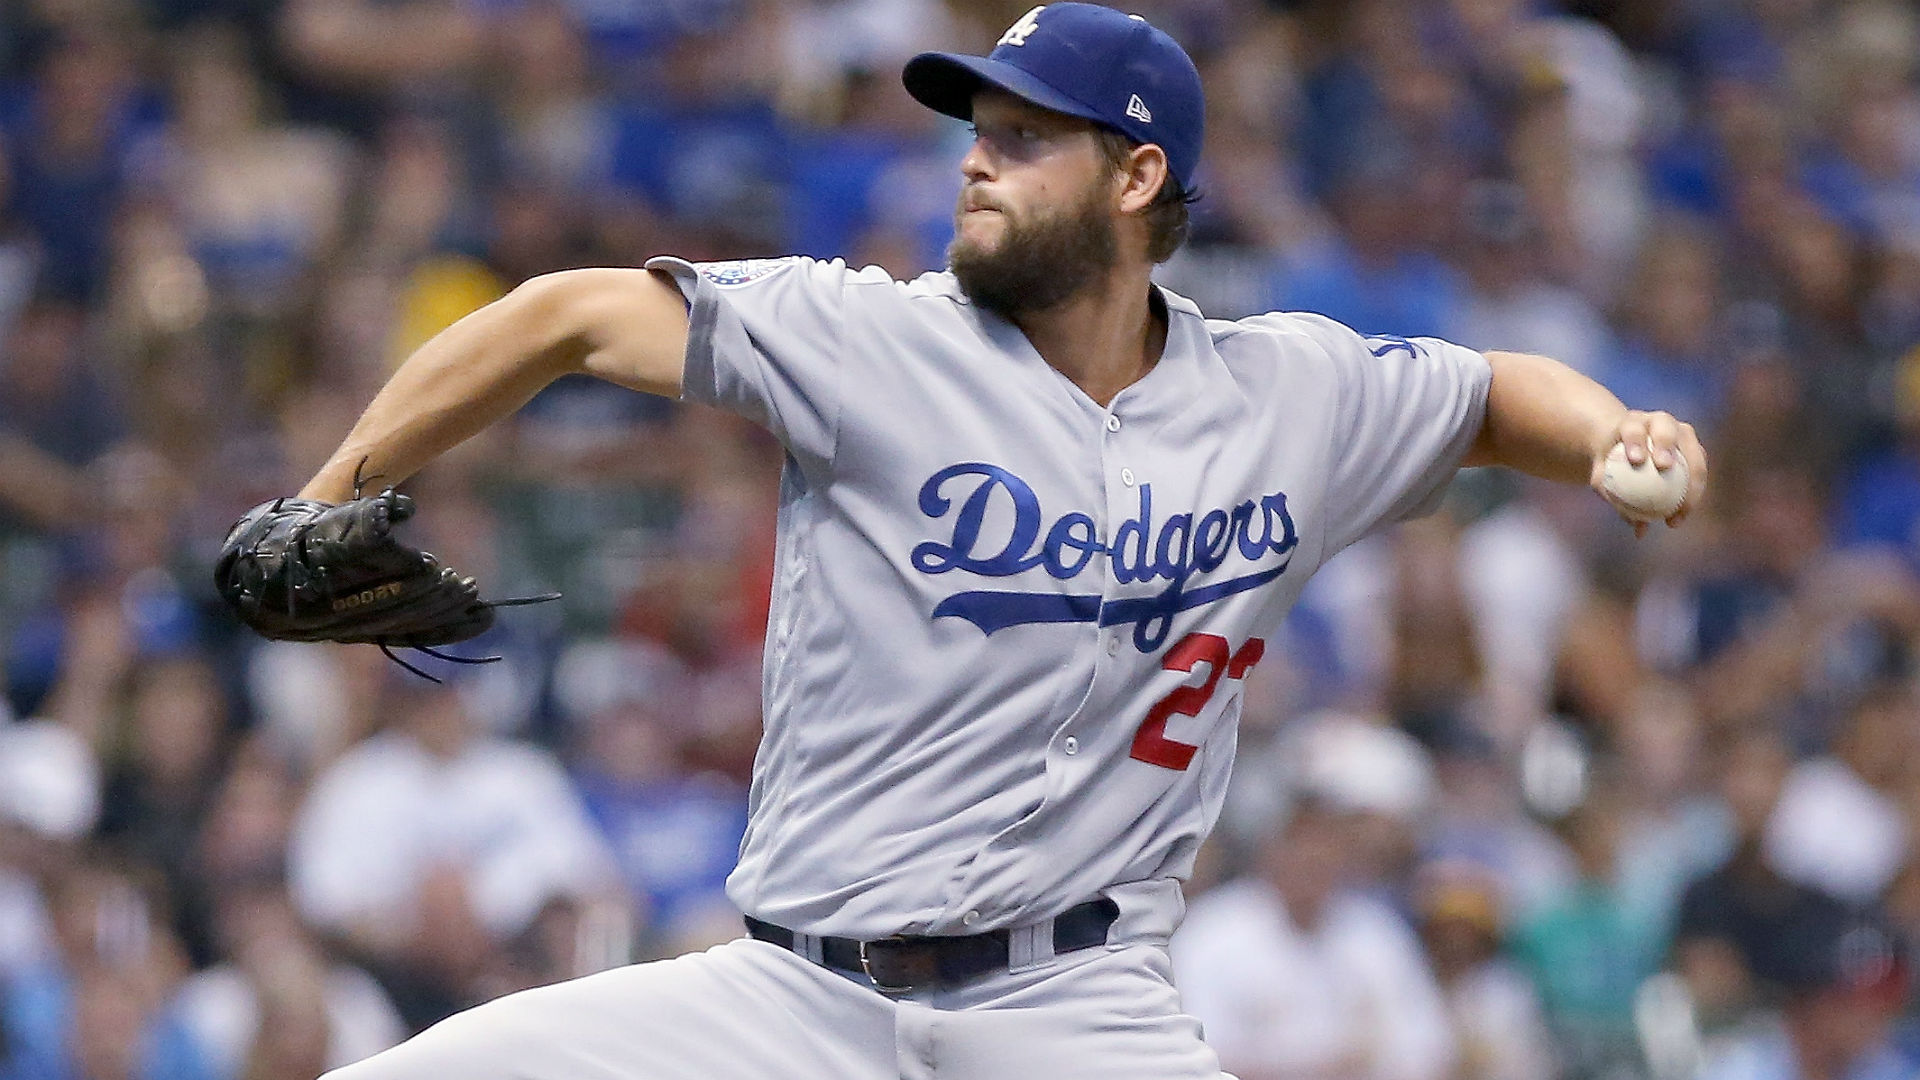 MLB postseason 2018: Is this Clayton Kershaw's last start as a Dodger?